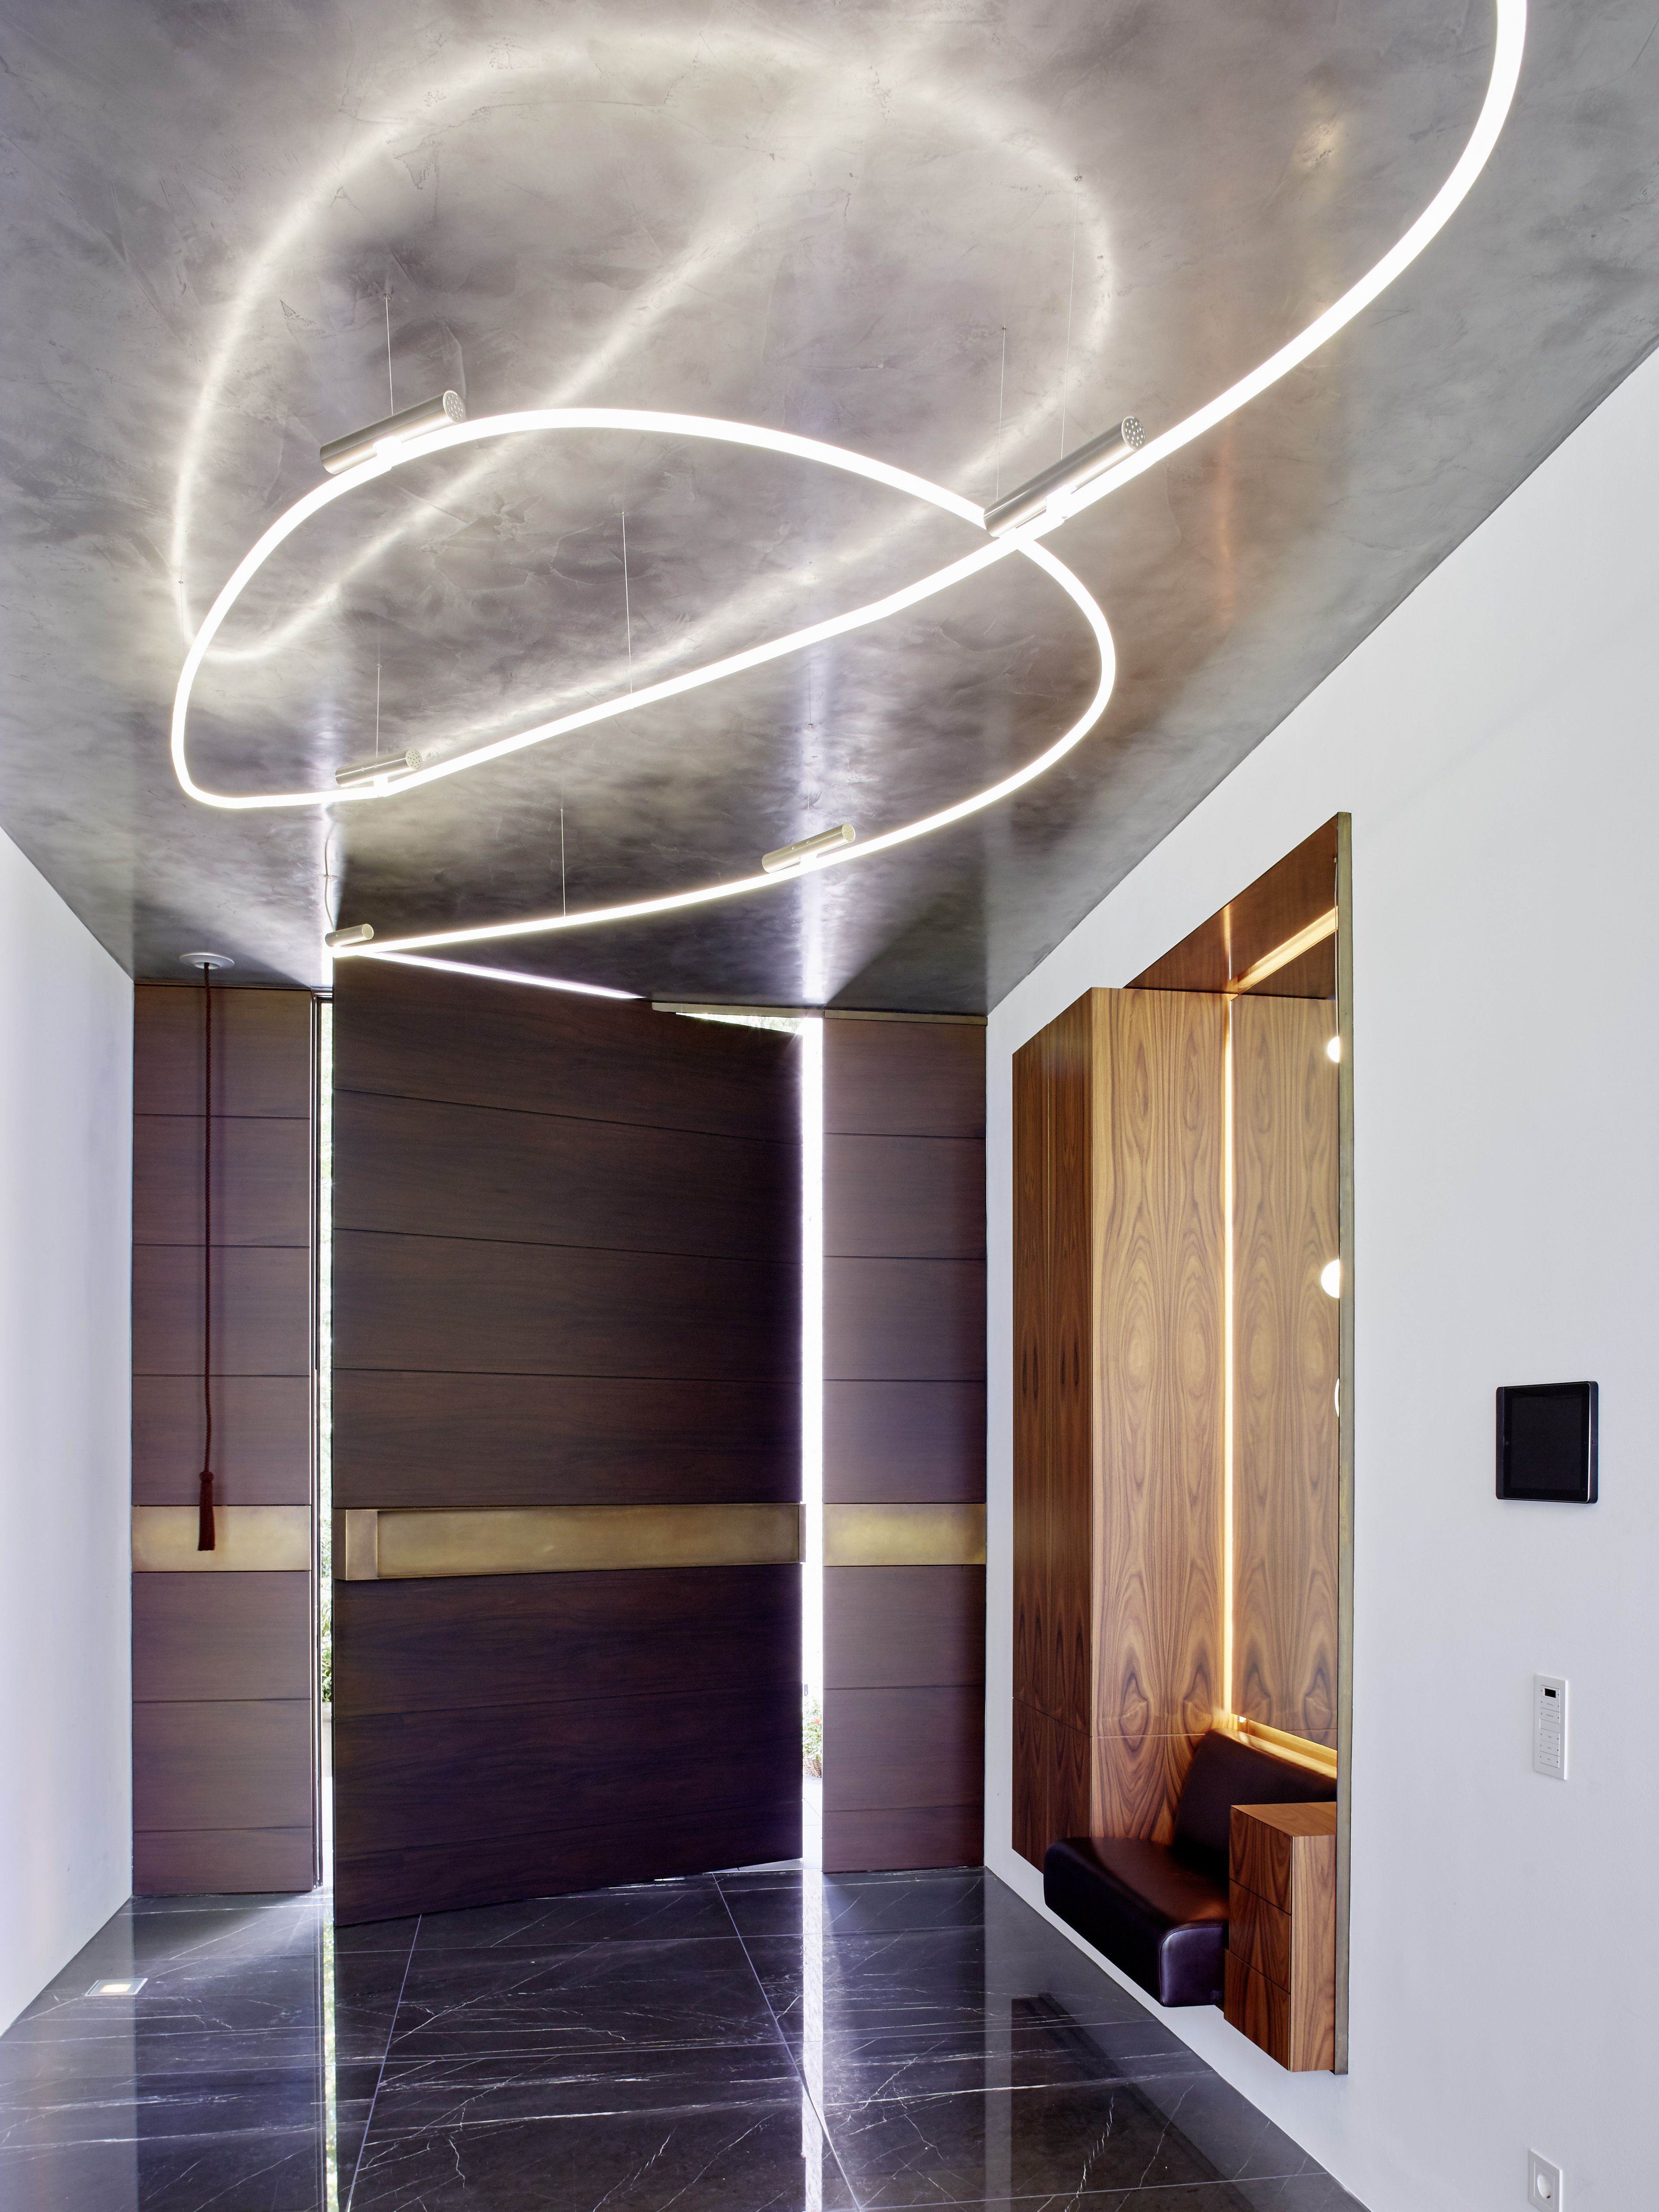 Neon chandelier The entrance hall features a seventeen metre